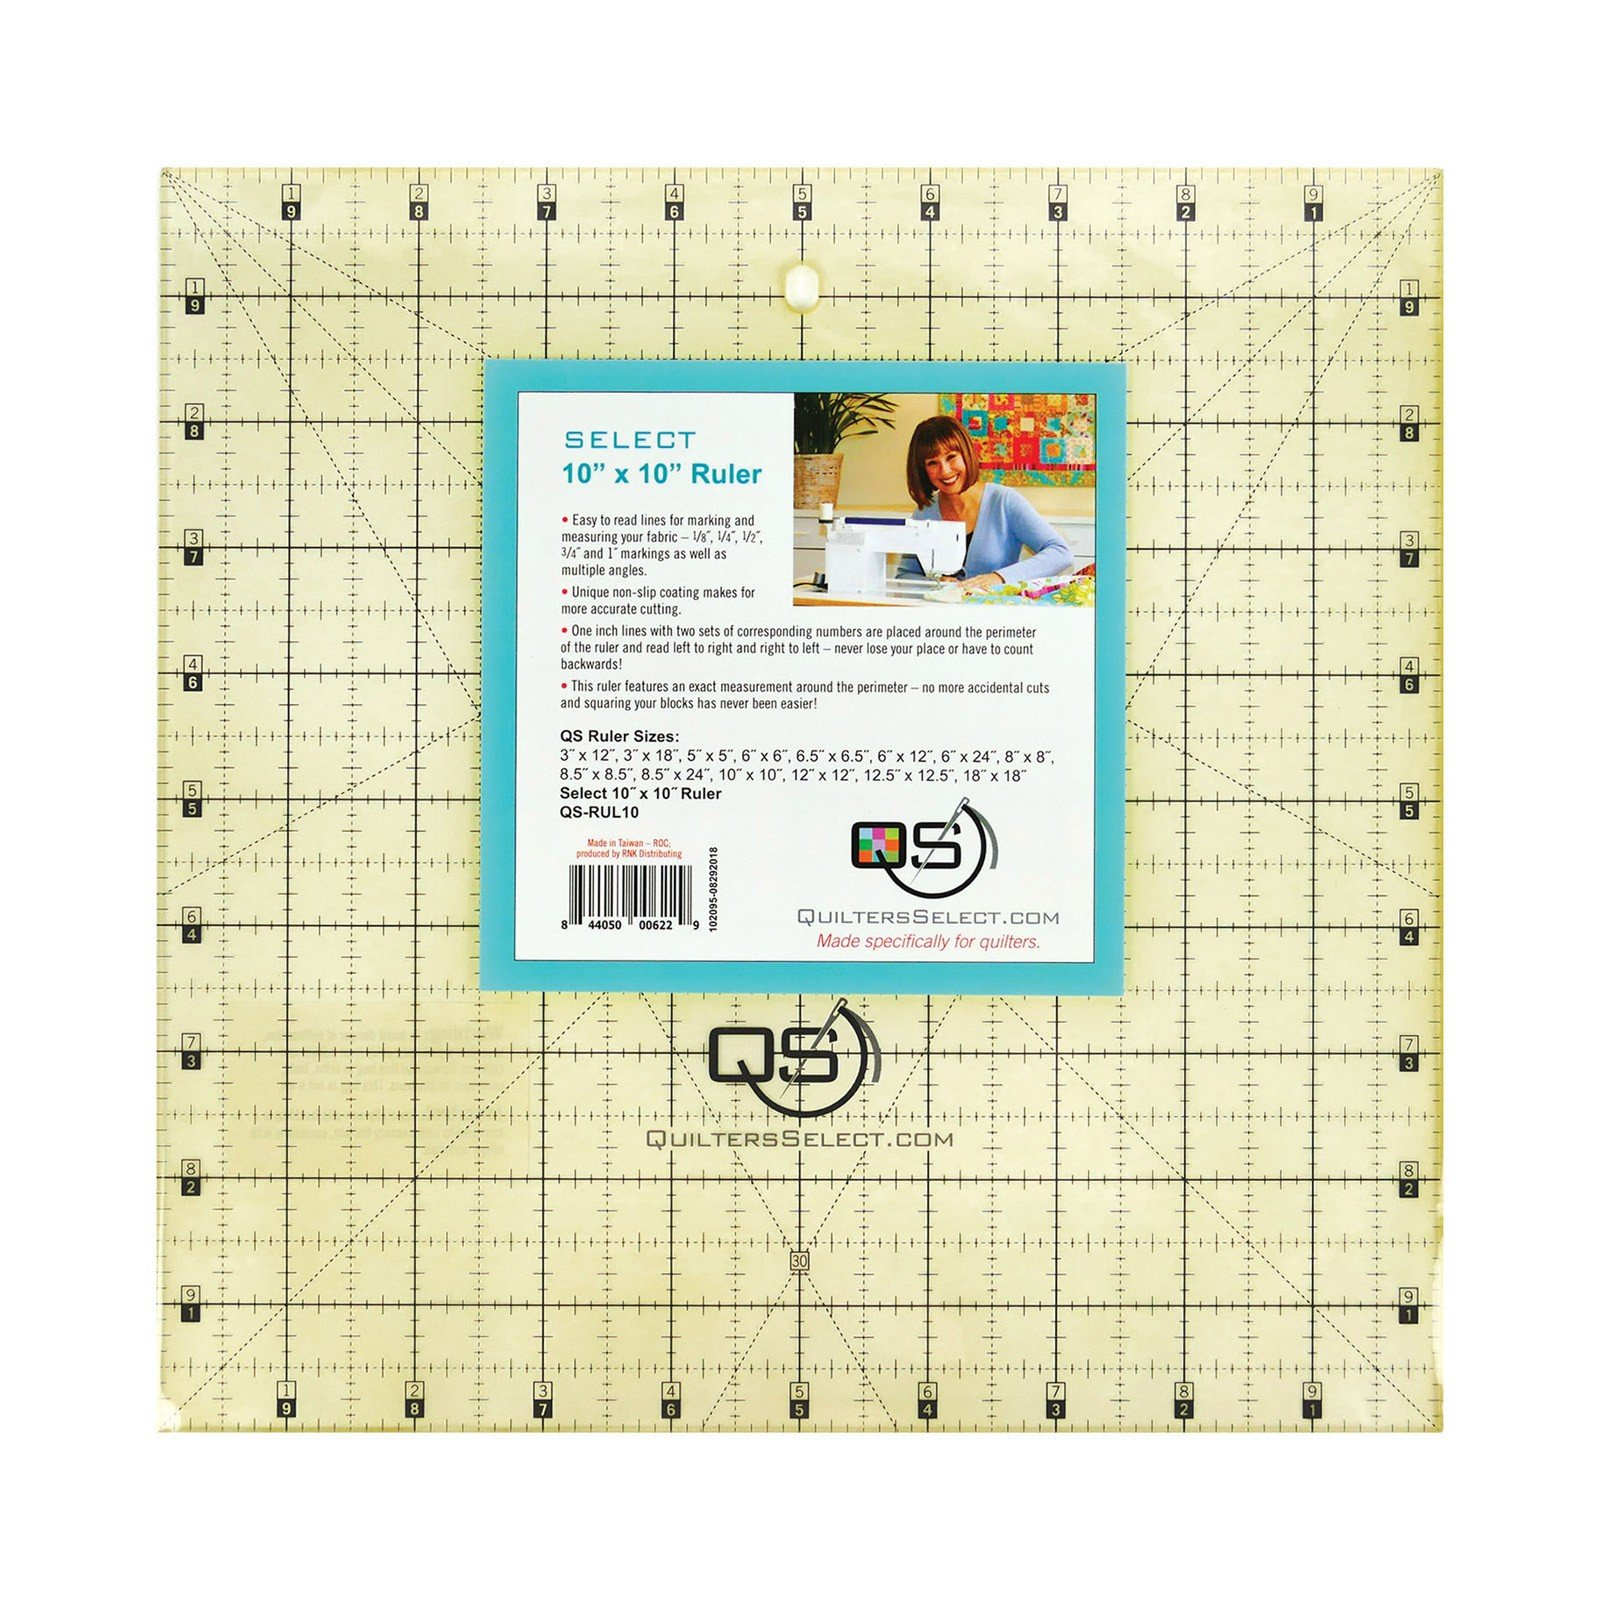 Quilters Select Non-Slip Ruler 10 x 10